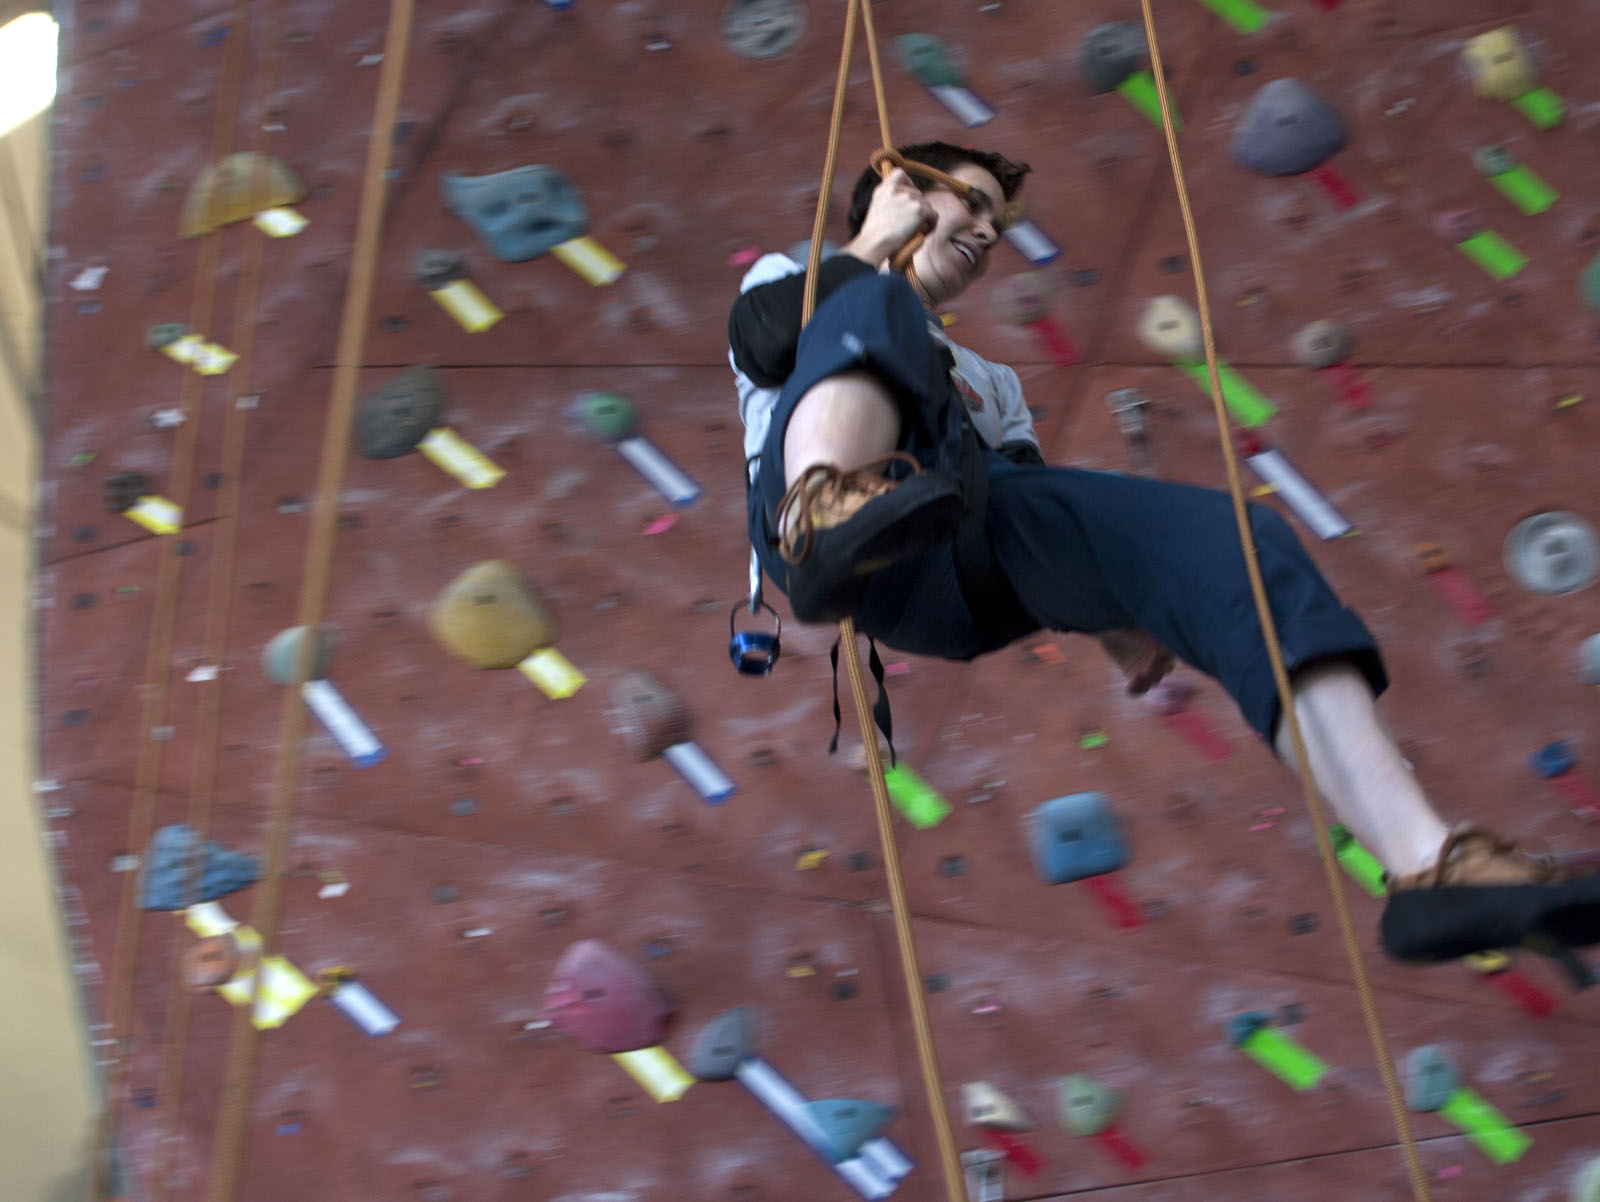 Roping and Swinging at Mission Cliffs